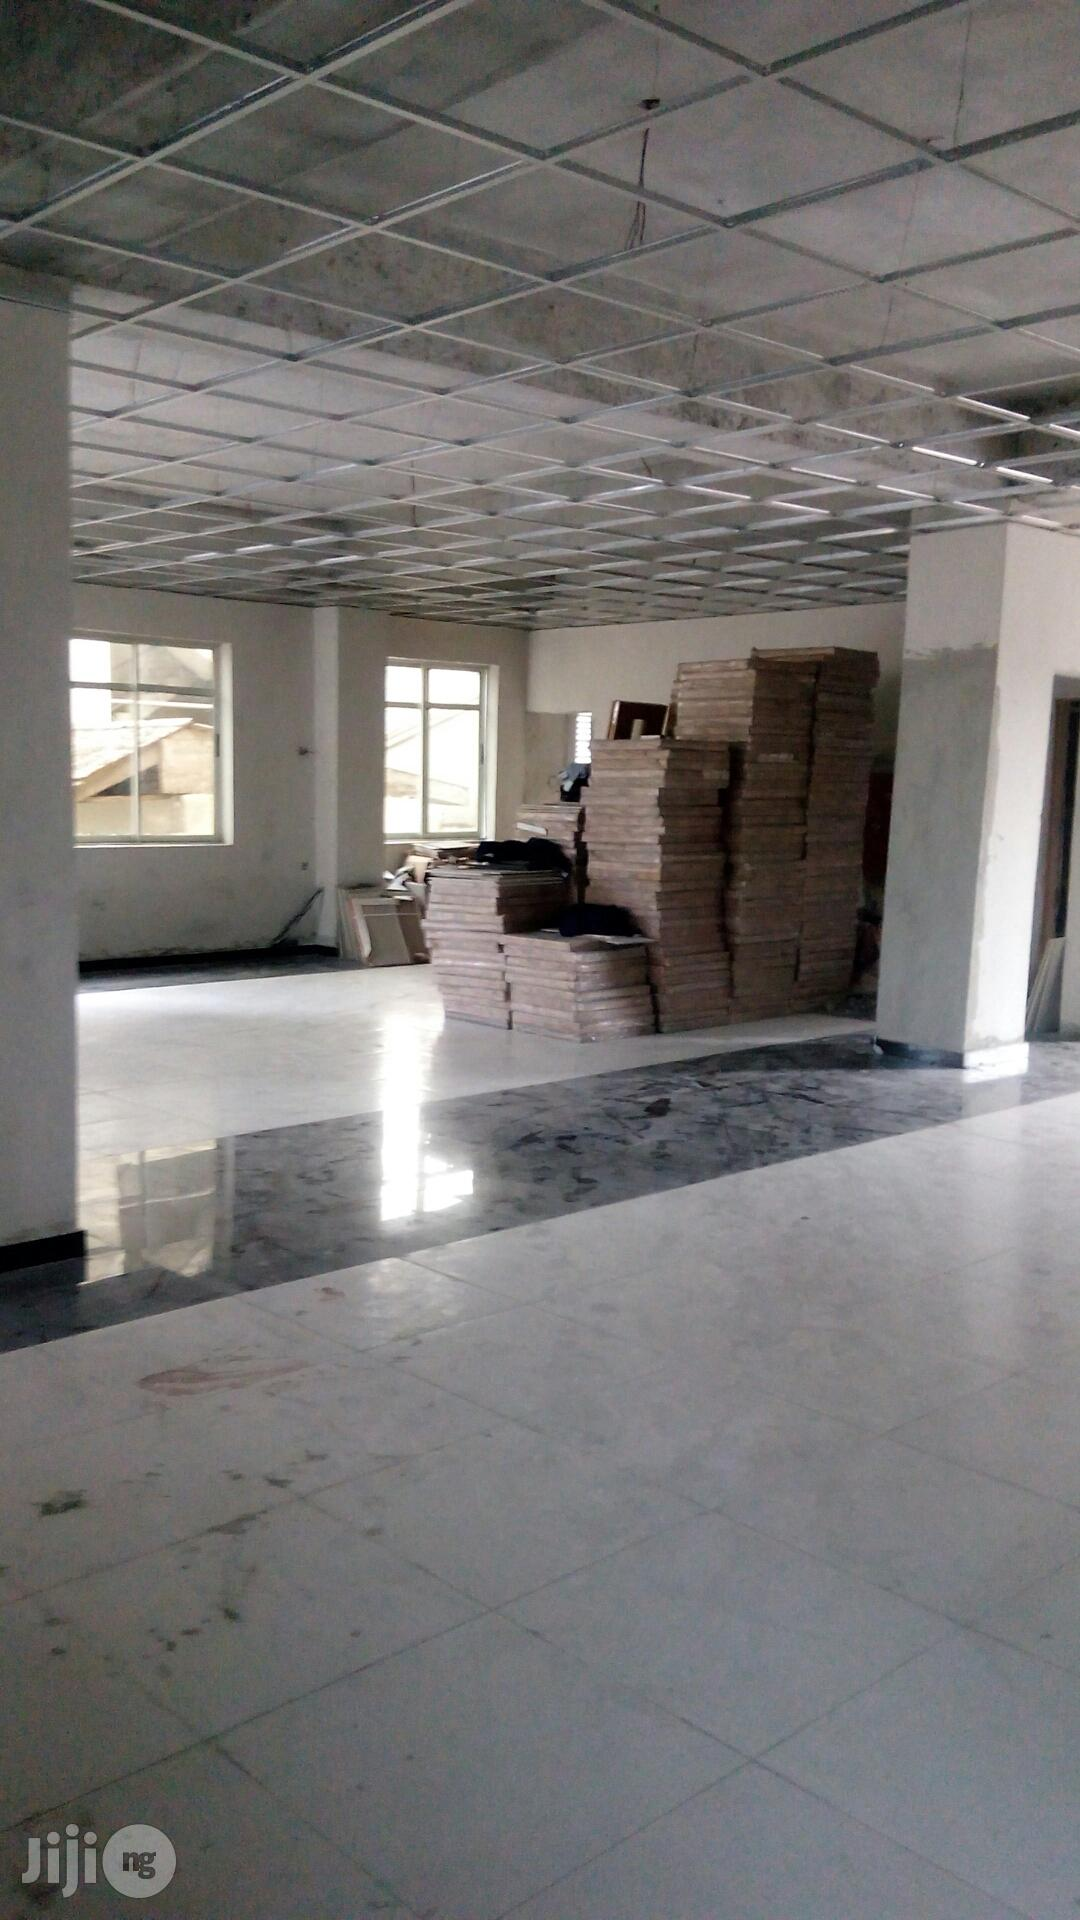 Bran New Office Space/Showroom At Garrision Dline PH | Commercial Property For Rent for sale in Port-Harcourt, Rivers State, Nigeria